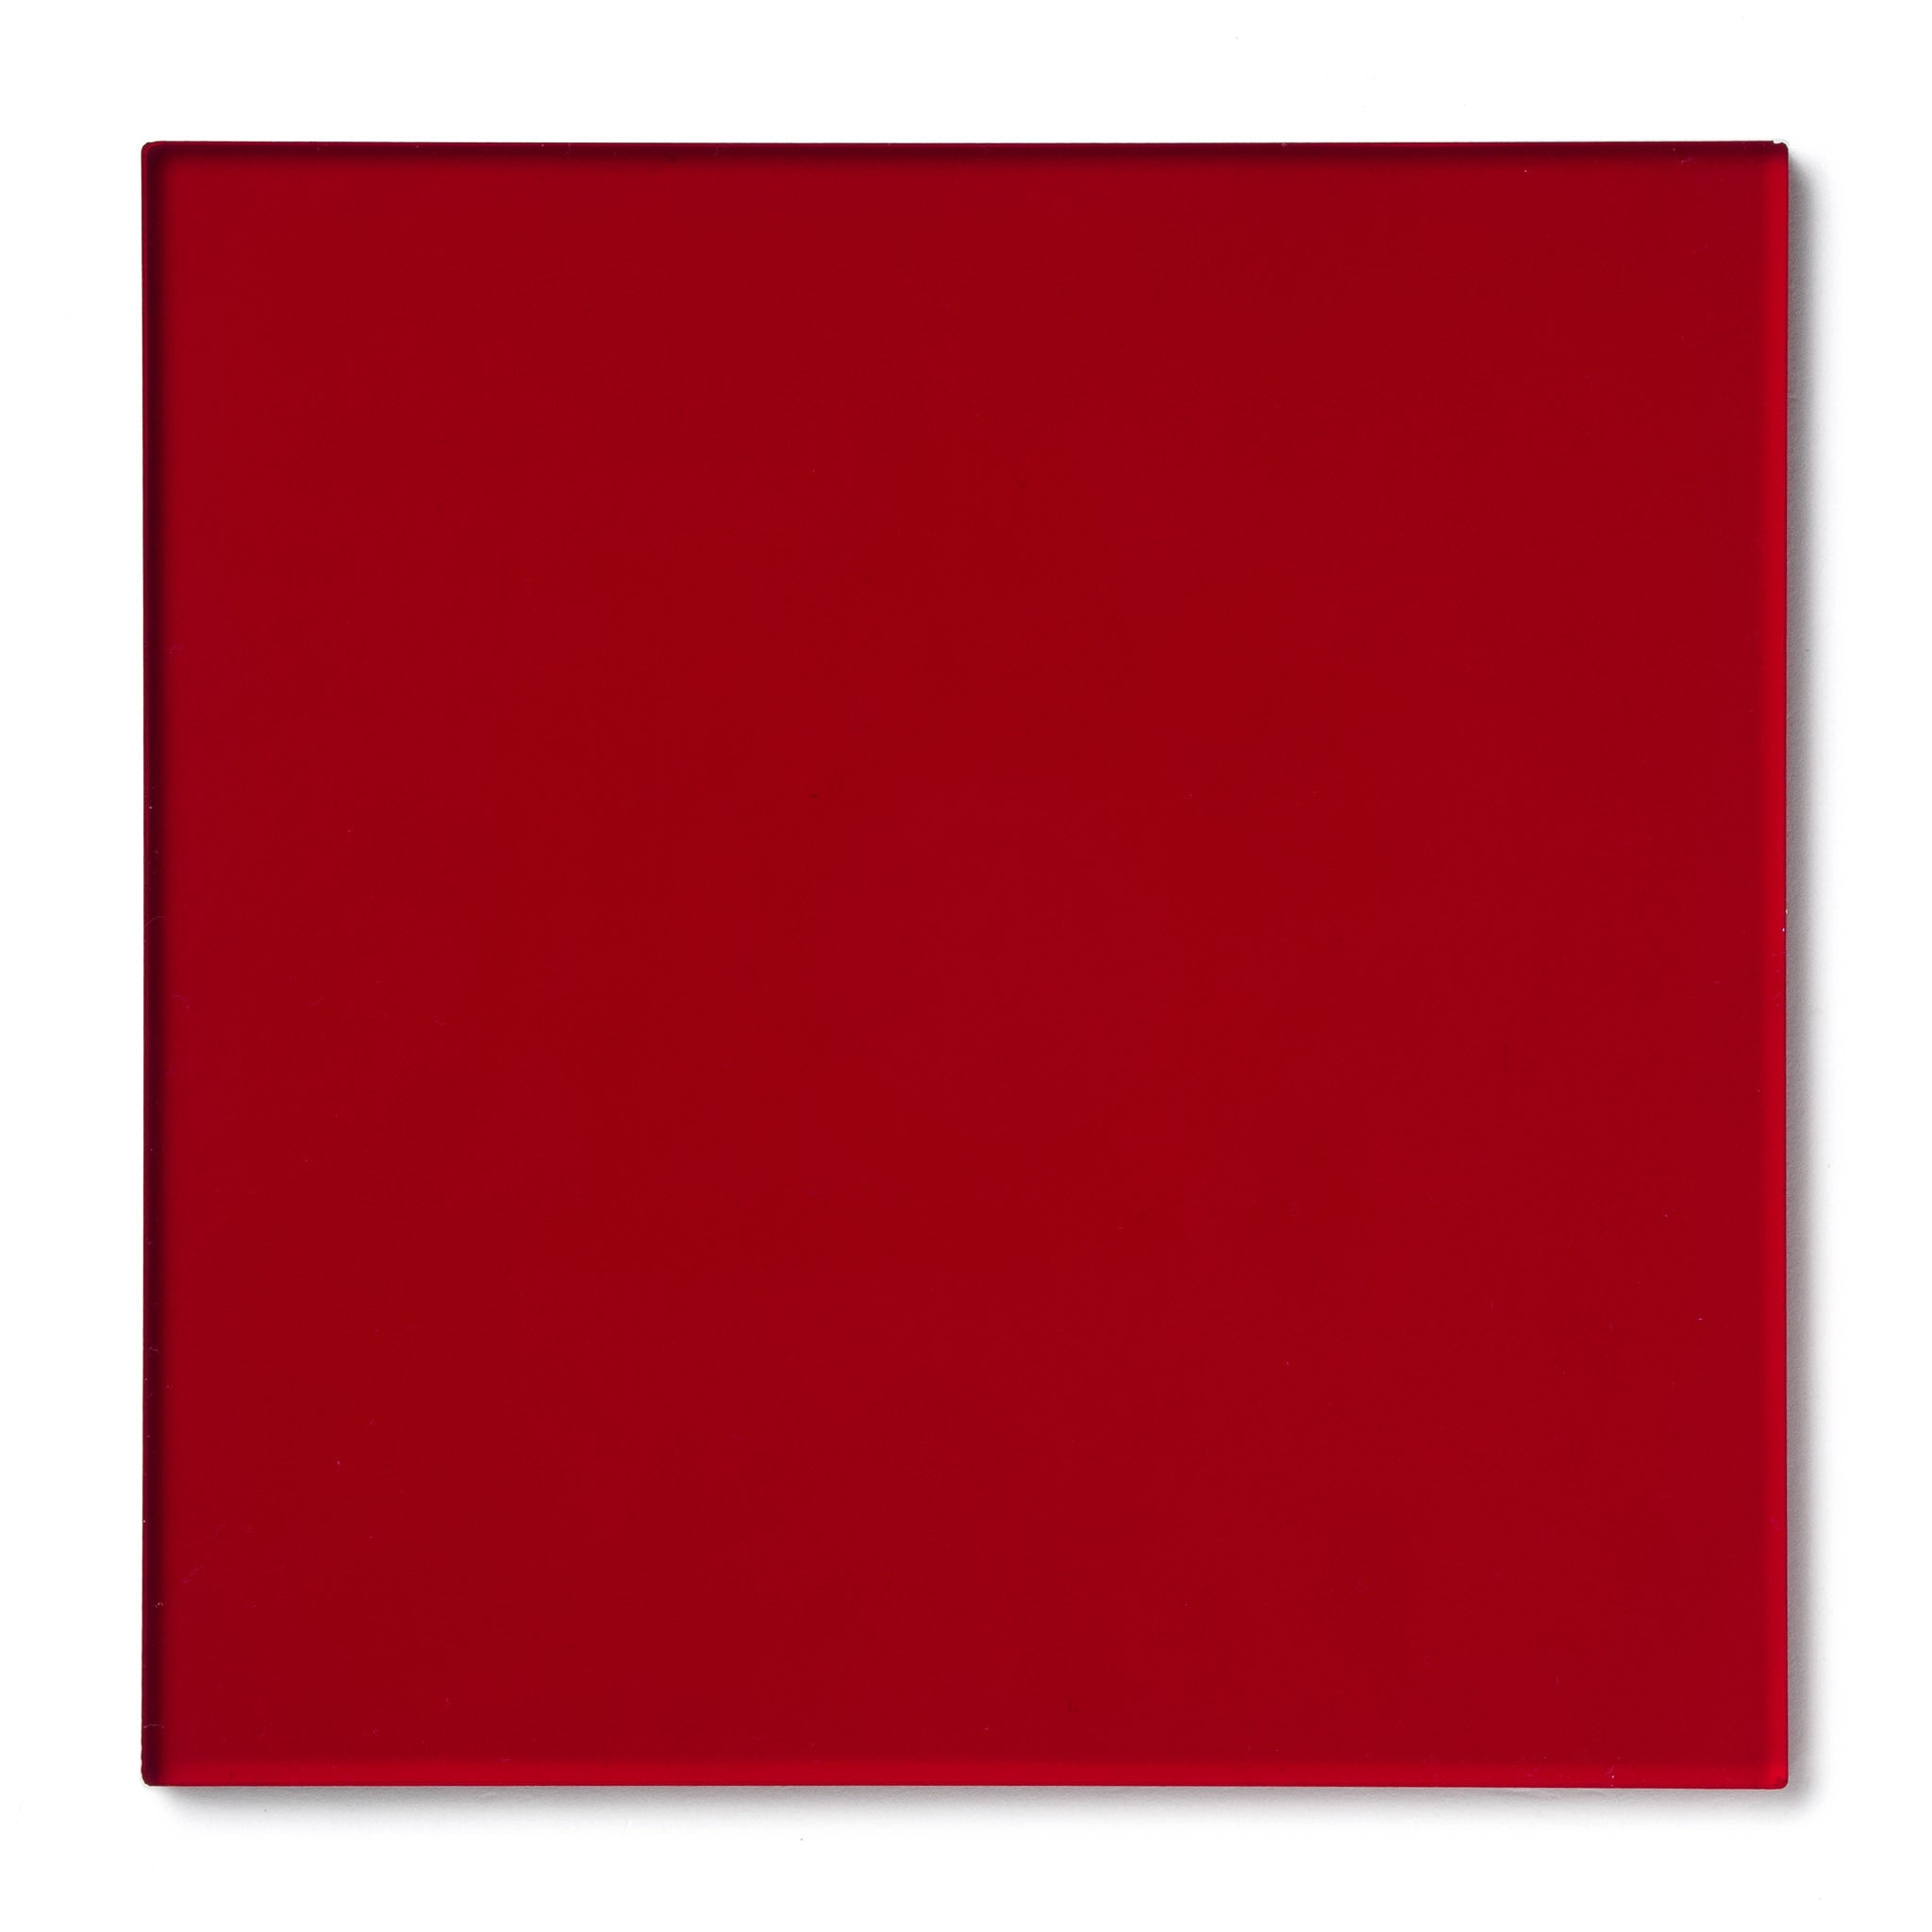 Red Transparent Acrylic Plexiglass Sheet, color 2423